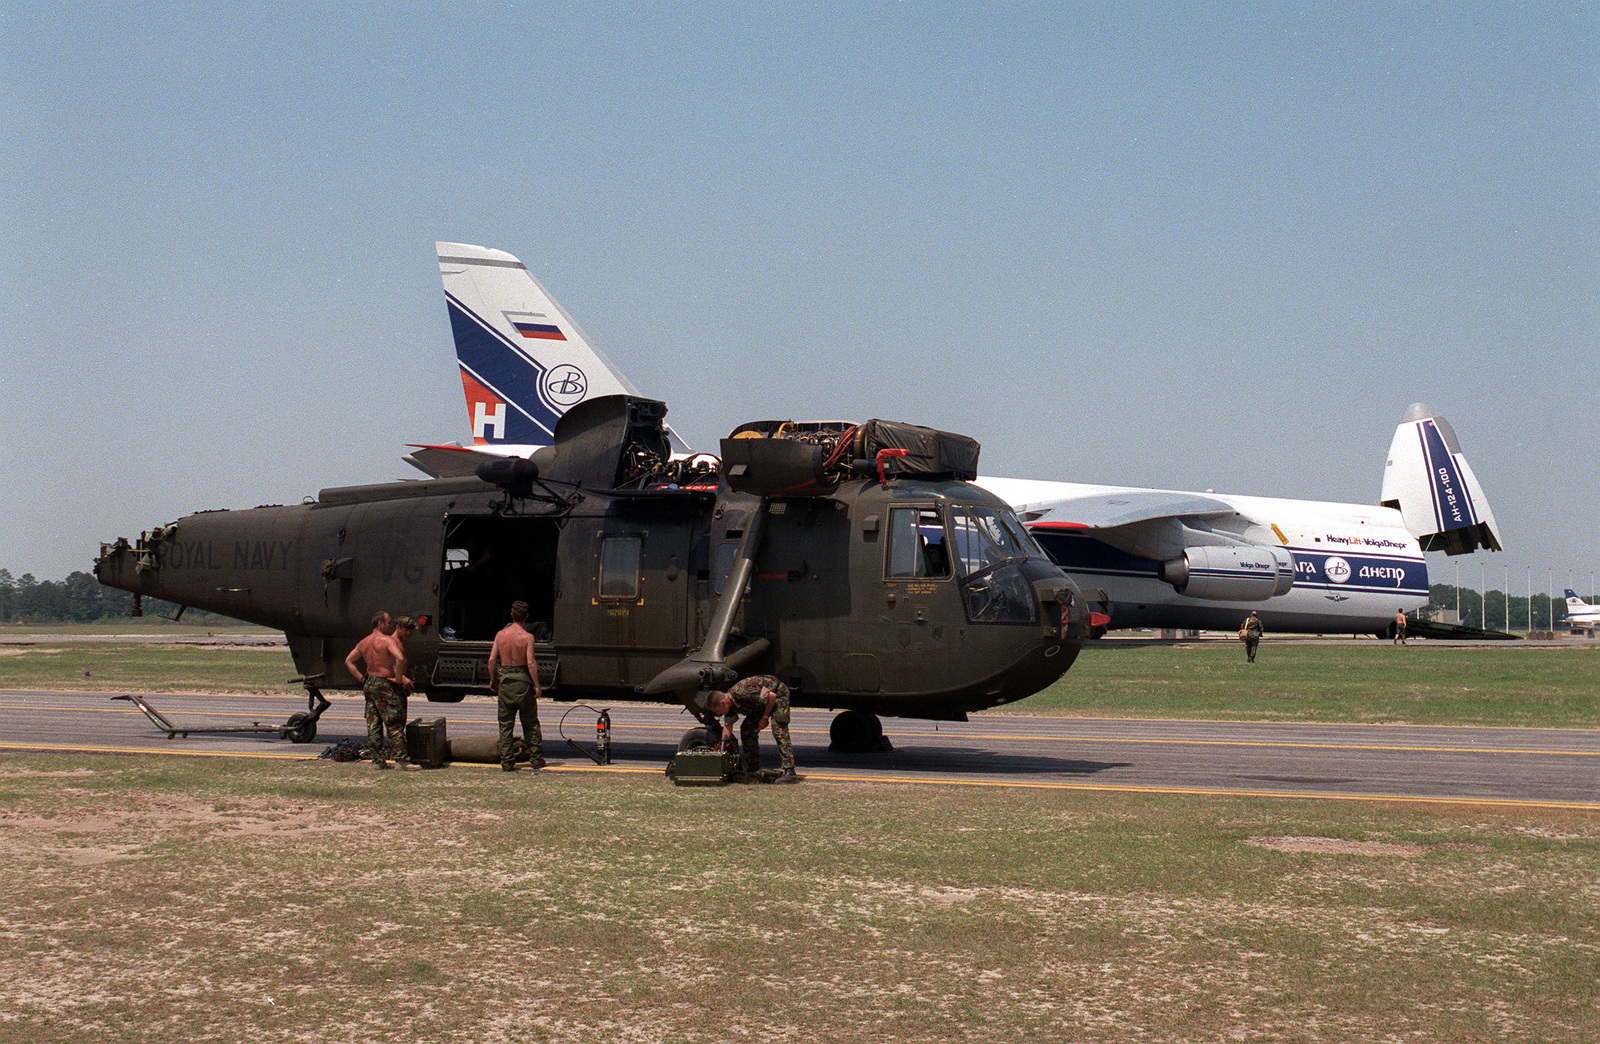 """Royal Navy and U.S. Army personnel work on a damaged Royal Navy Sea King Mk4 helicopter to prepare it for loading on the Russian Antonev AN-124-100 """"Ruslan"""" (NATO code name """"Condor"""") in the background. The Sea King sheared its tail rotor as a result of a hard landing on the Fort Bragg, N.C. reservation while participating in Exercise PURPLE STAR (Combined Joint Task Force 96 individual commands used their own code names for the exercise). The U.S. Army units used Exercise """"ROYAL DRAGON""""; U.S. Air Force units used Exercise """"BIG DROP III"""" as their code name, while the 17,000 British forces involved used Exercise """"PURPLE STAR."""""""